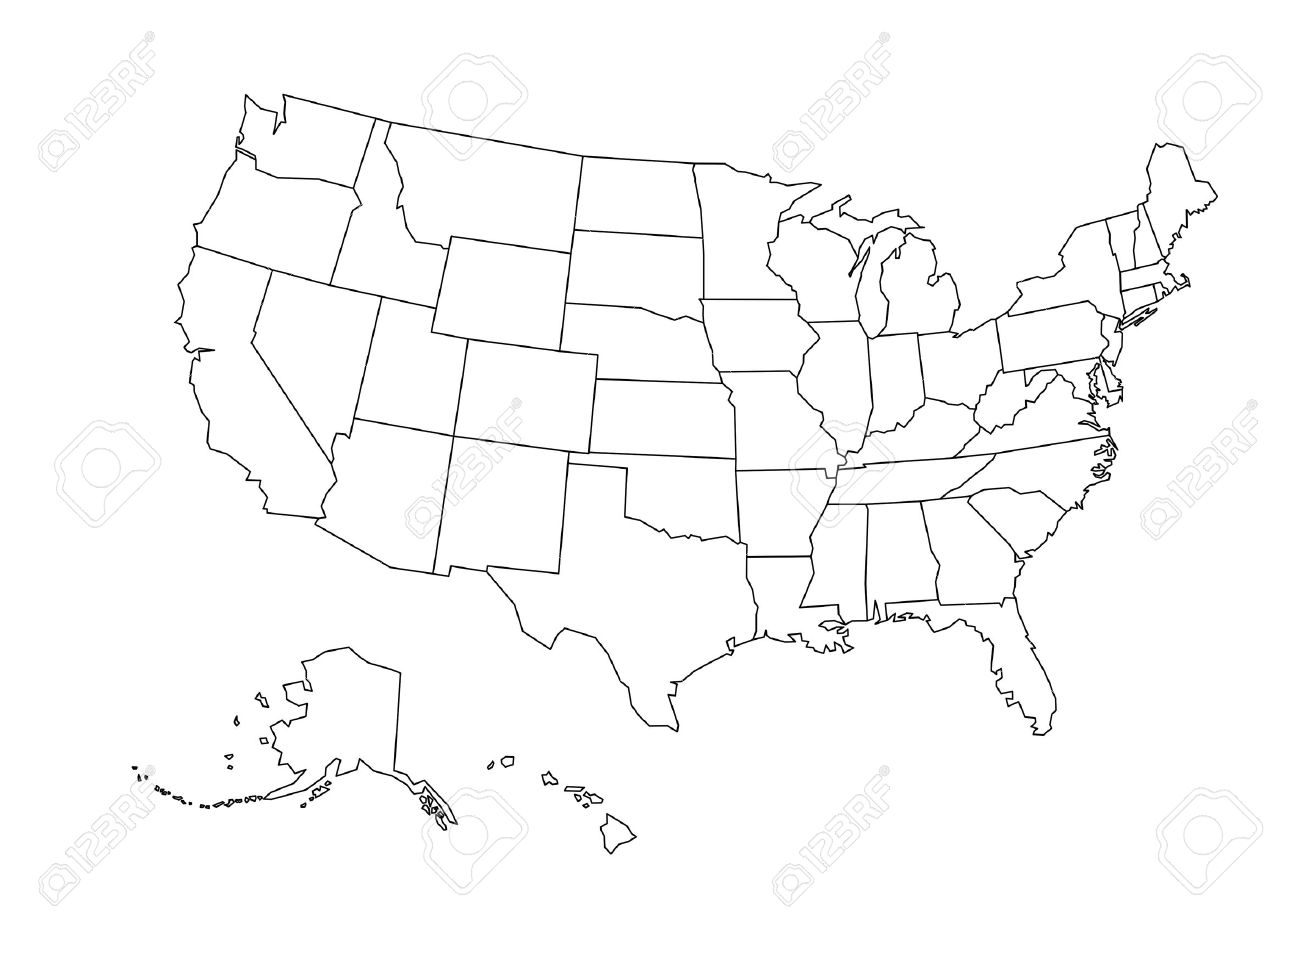 Geography Blog Outline Maps United States - Map united states black and white